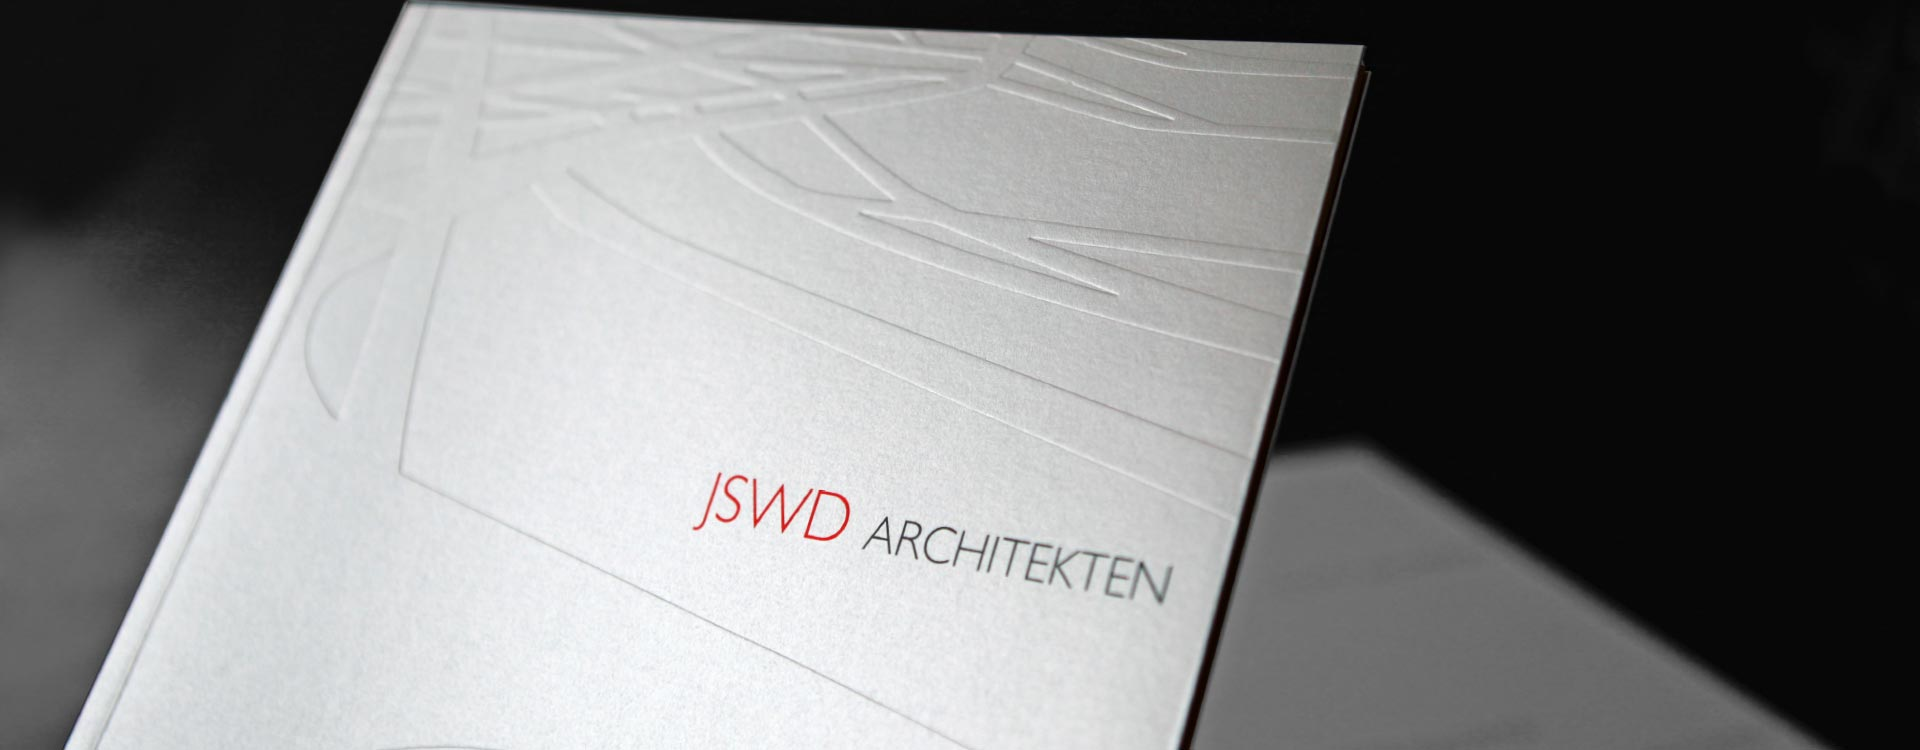 Image brochure for JSWD Architekten, Köln, with embossed envelope; Design: Kattrin Richter | Graphic Design Studio